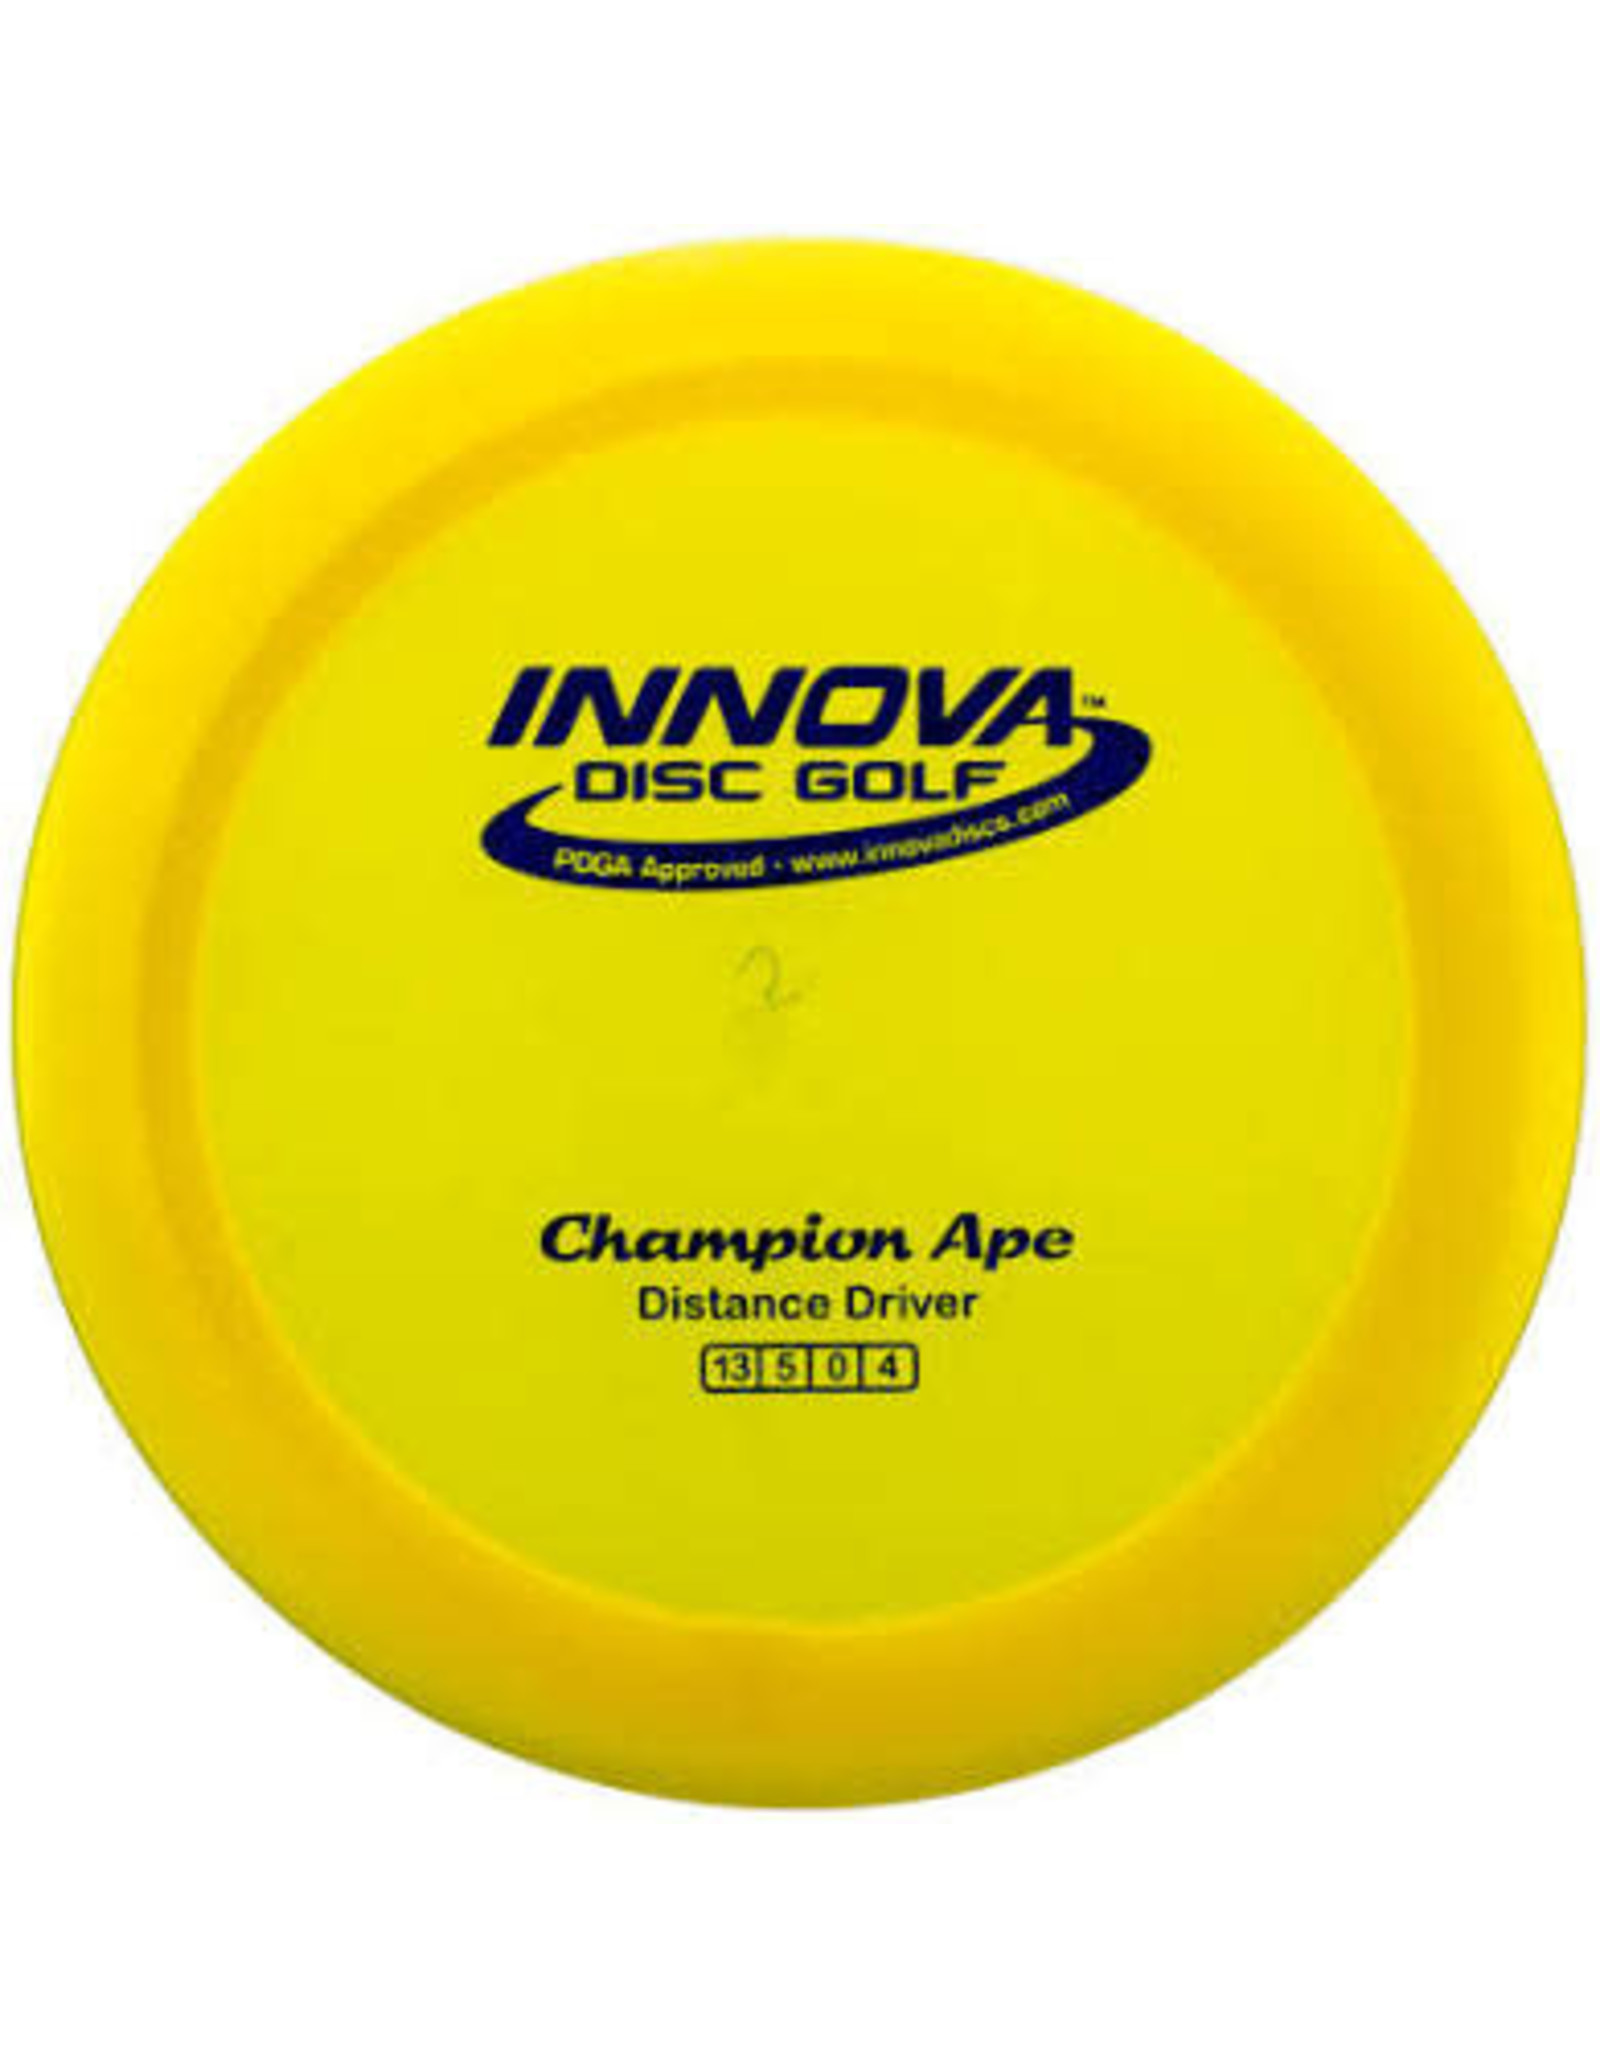 Innova Disc Golf Innova Champion Ape